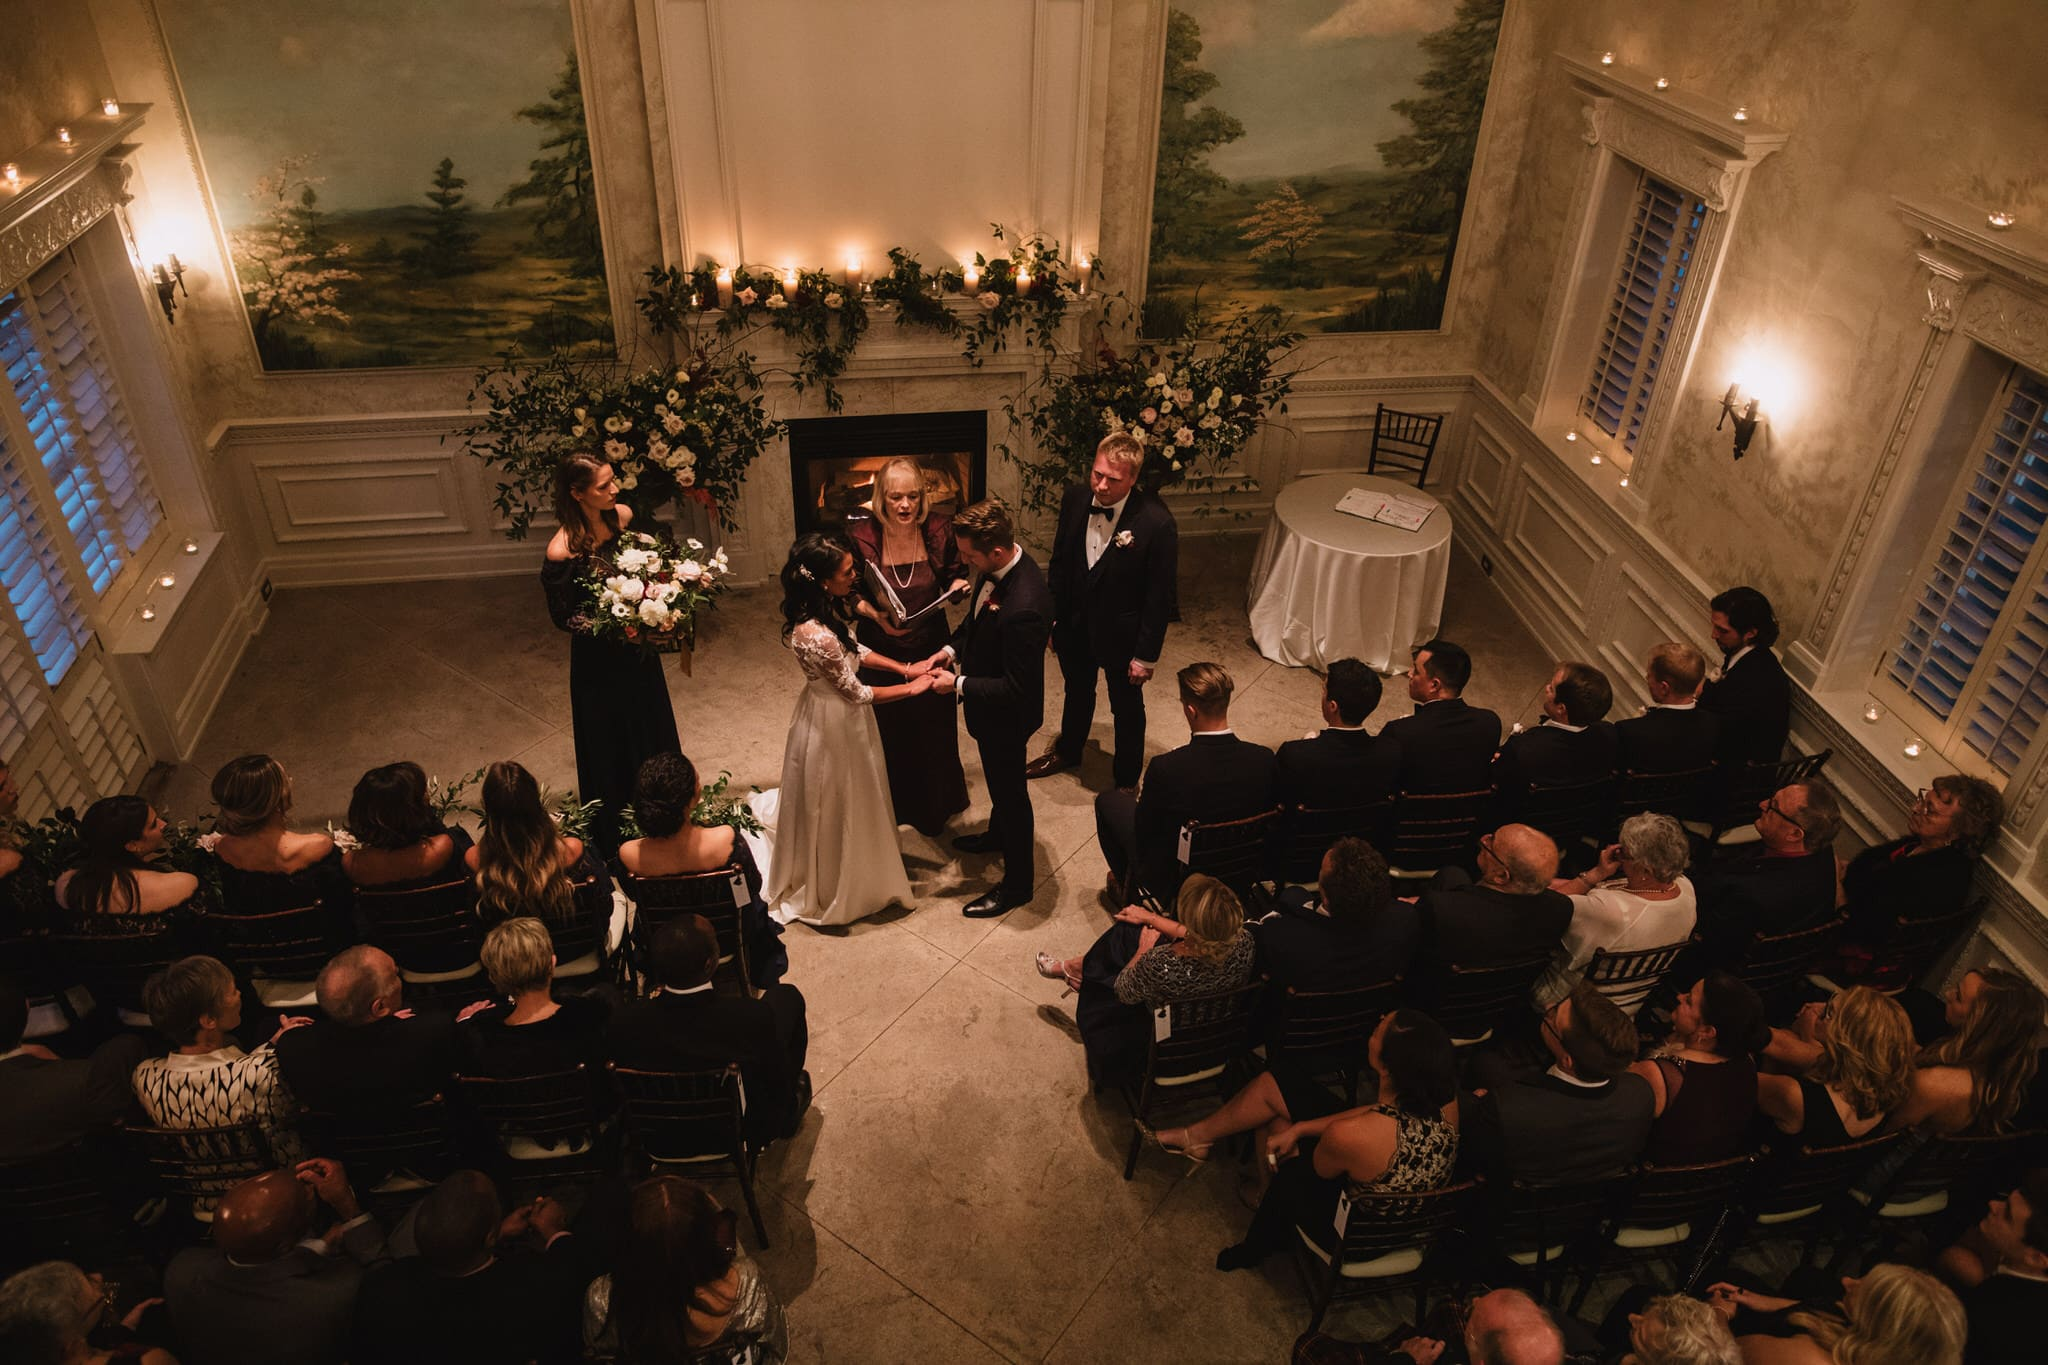 Bride and groom stand at the alter at Graydon Hall Manor wedding in Toronto